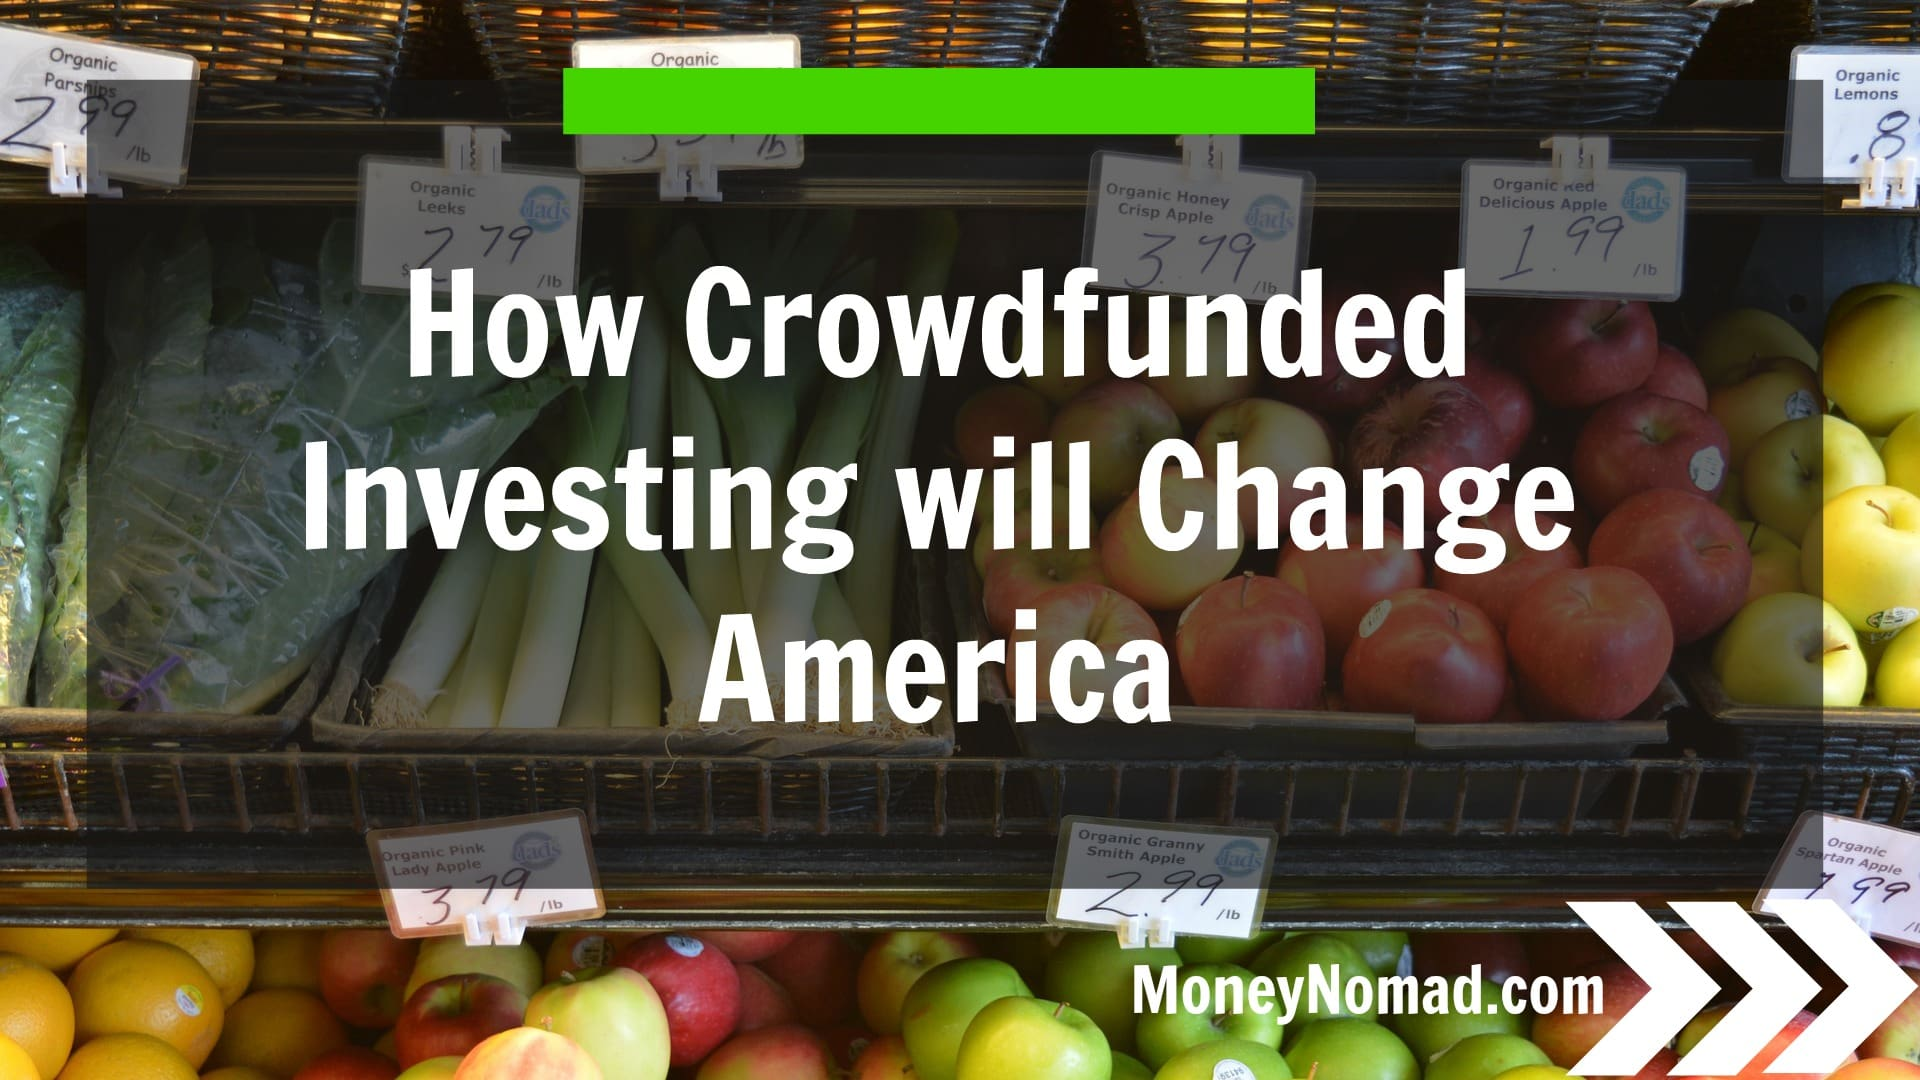 How Crowdfunded Investing will Change America